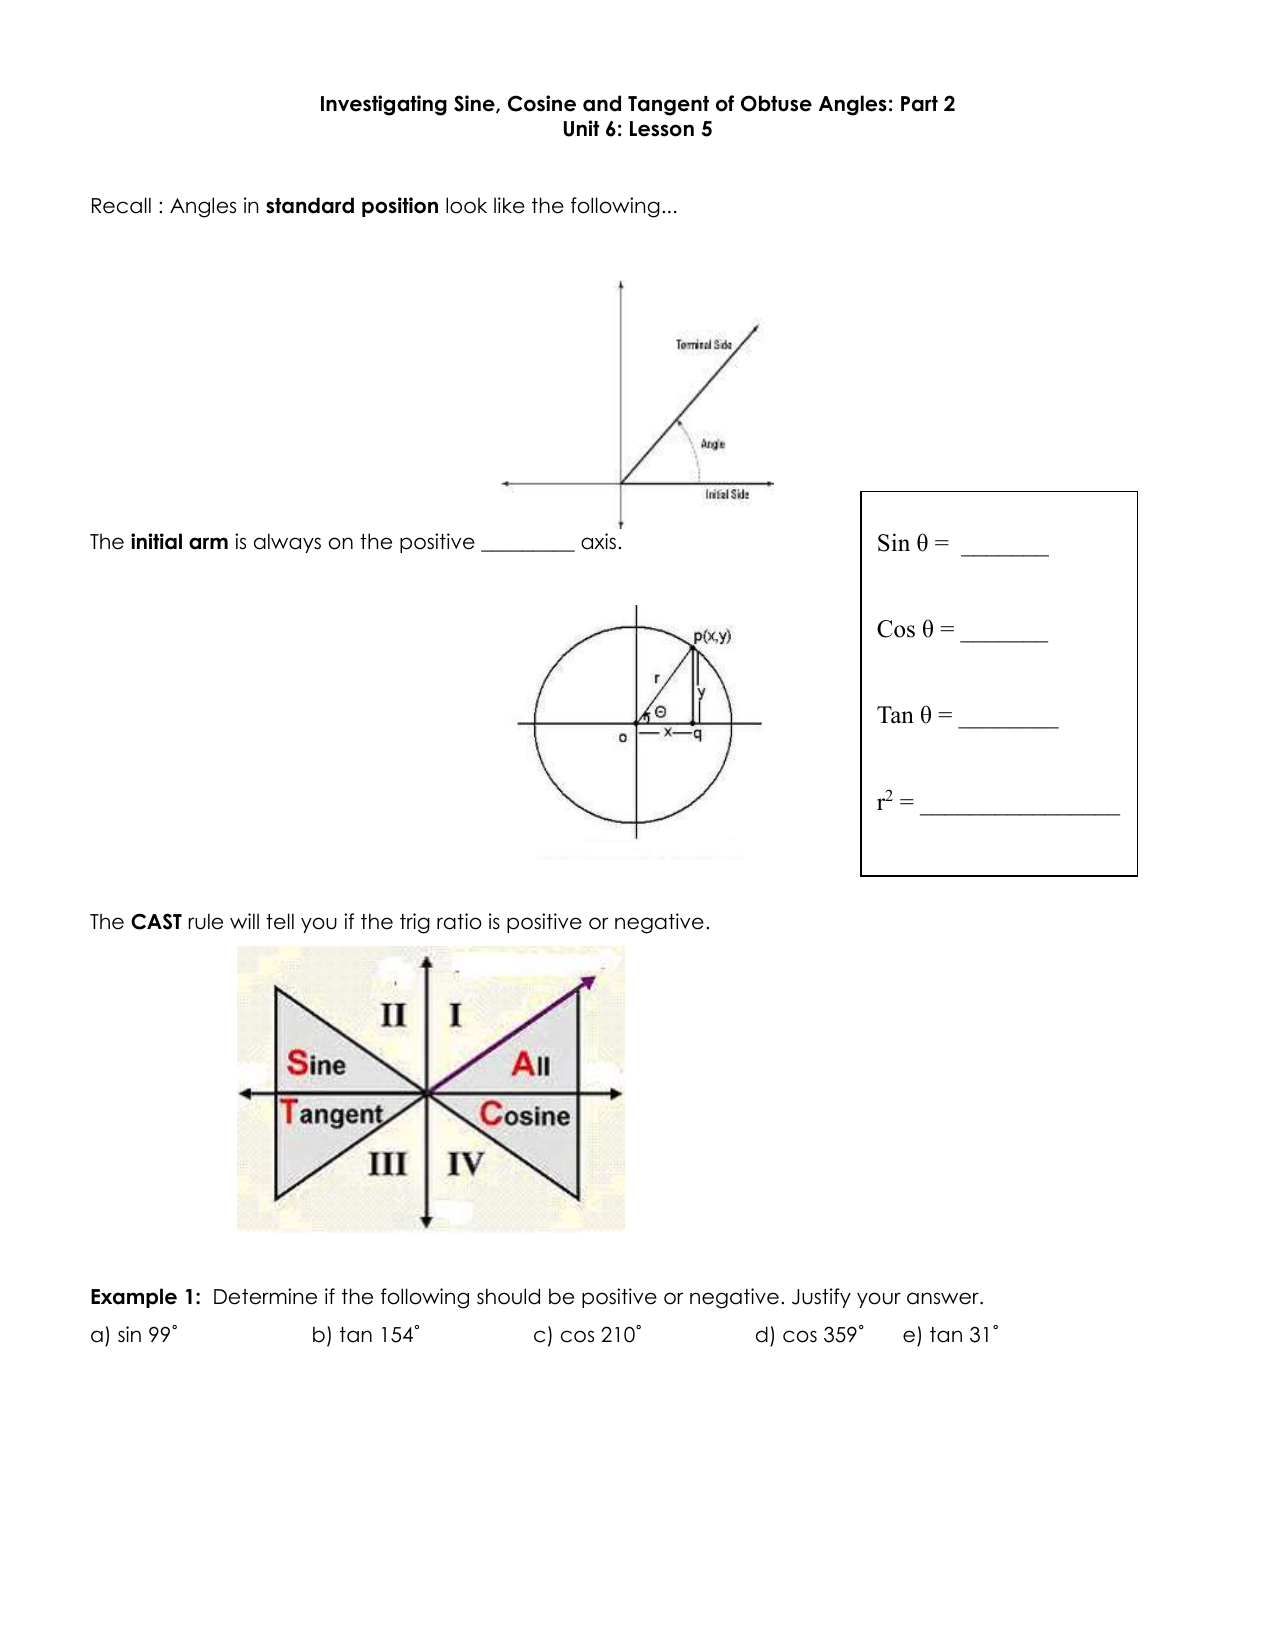 Investigating Sine, Cosine and Tangent of Obtuse Angles